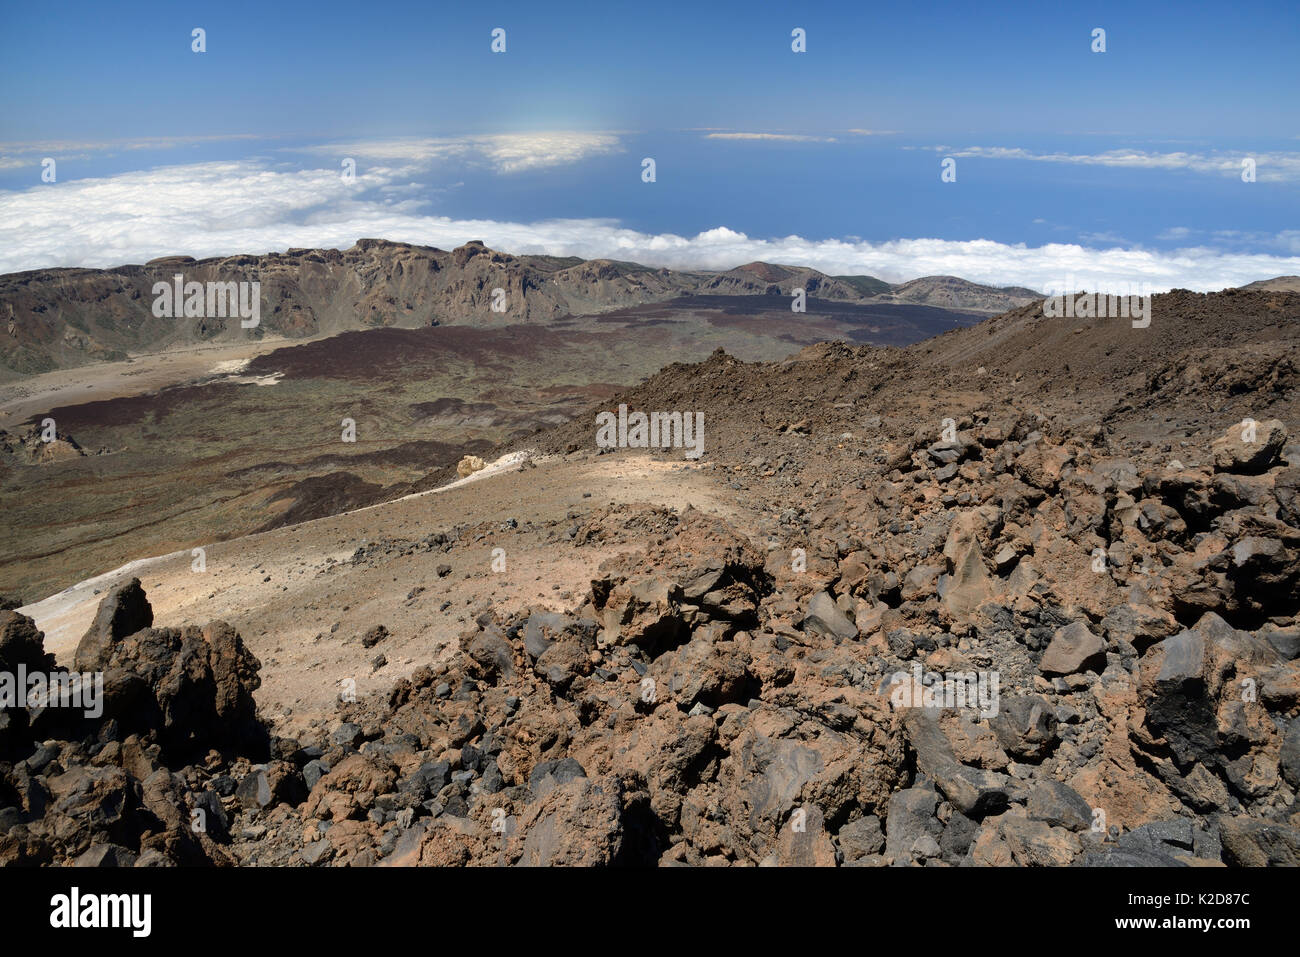 Overview of Las Canadas caldera from the 3700m summit of Mount Teide, the highest mountain in Europe, with old lava flows and pumice deposits, with clouds over the sea in the background, Tenerife, May. - Stock Image